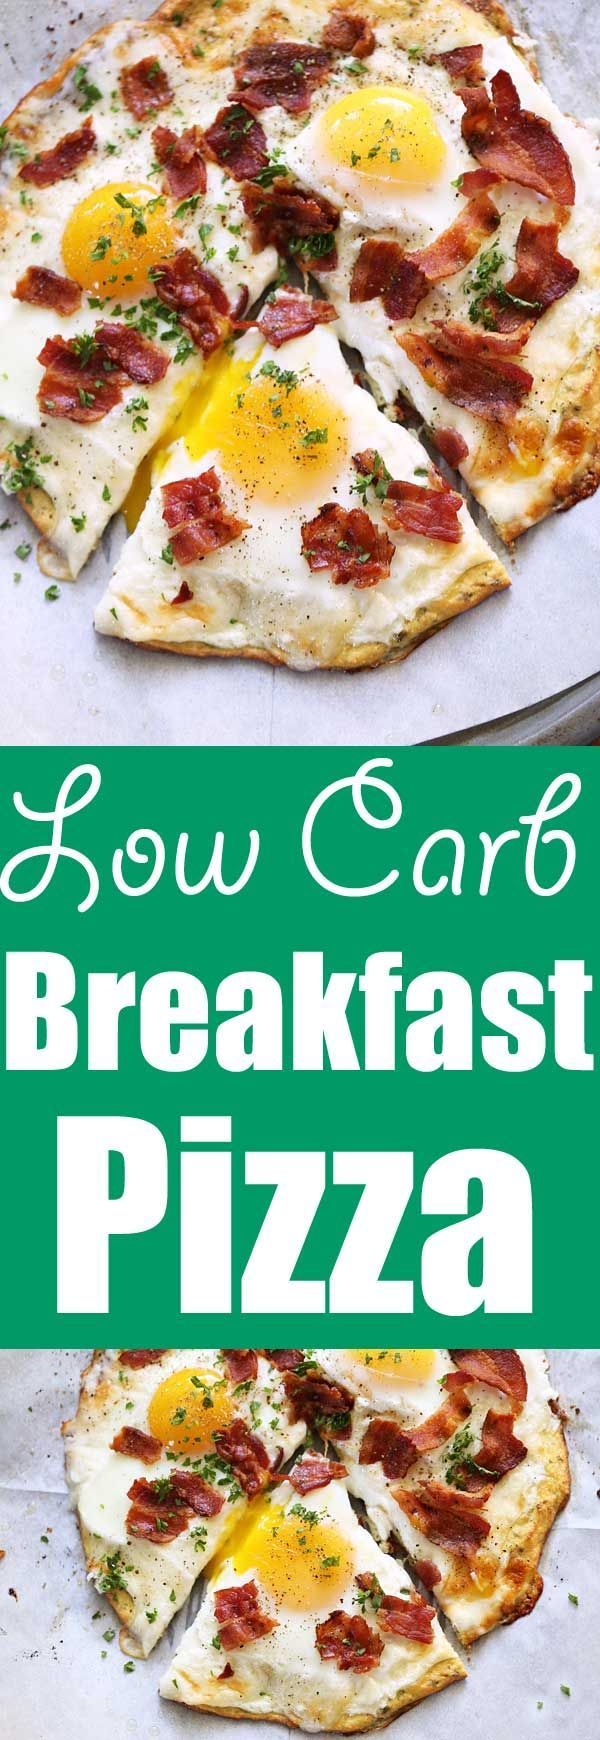 This low carb breakfast pizza is made with a delicious, cheesy coconut flour crust. Add cheese, eggs and bacon, and you've got yourself the perfect low carb breakfast pizza! via @healthyrecipes